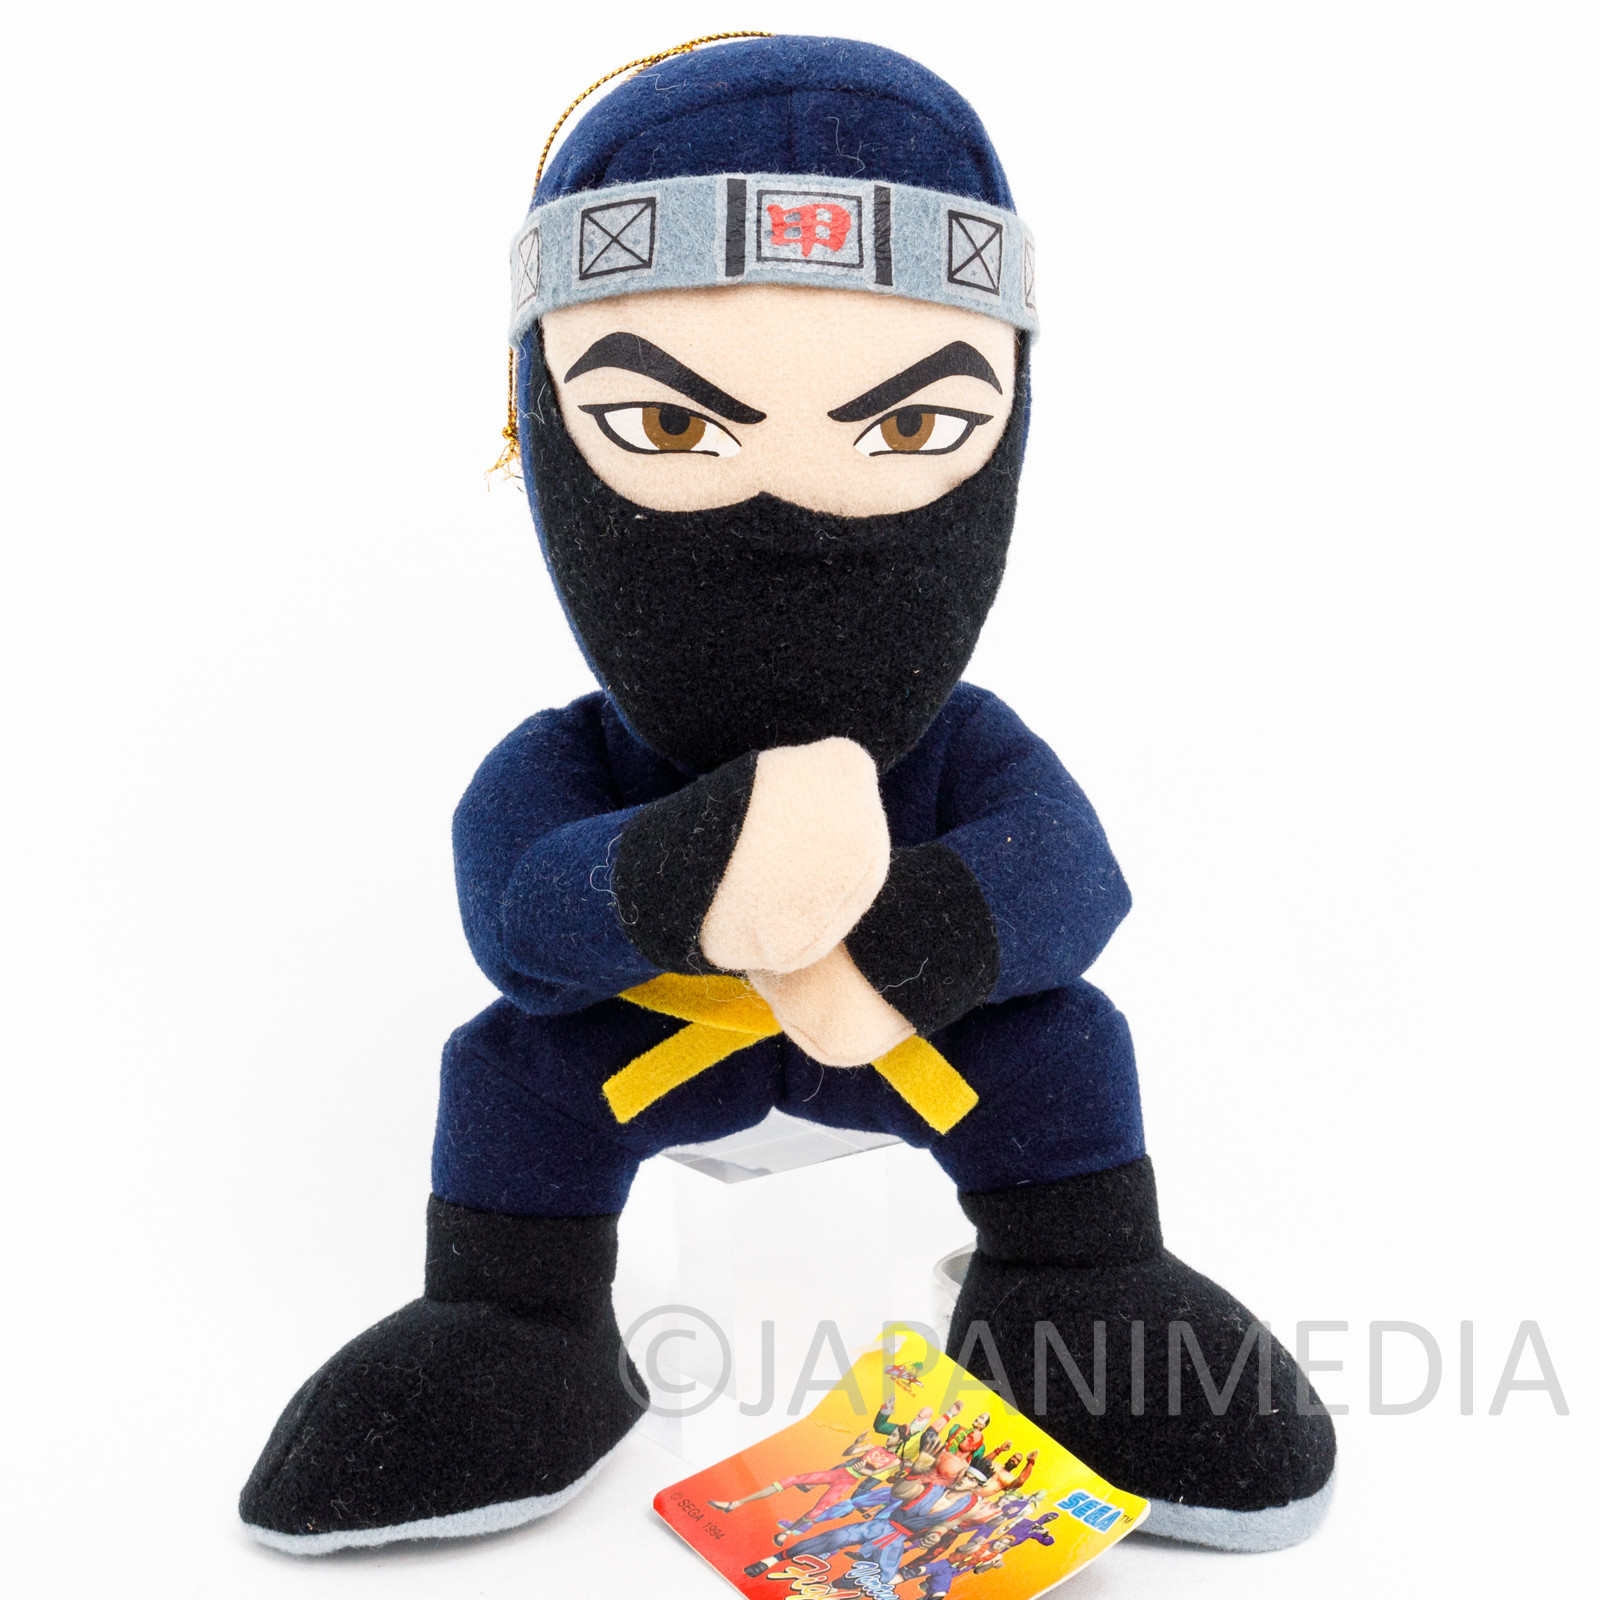 "Virtua Fighter Kagemaru Plush Doll 8"" SEGA 1994 JAPAN"